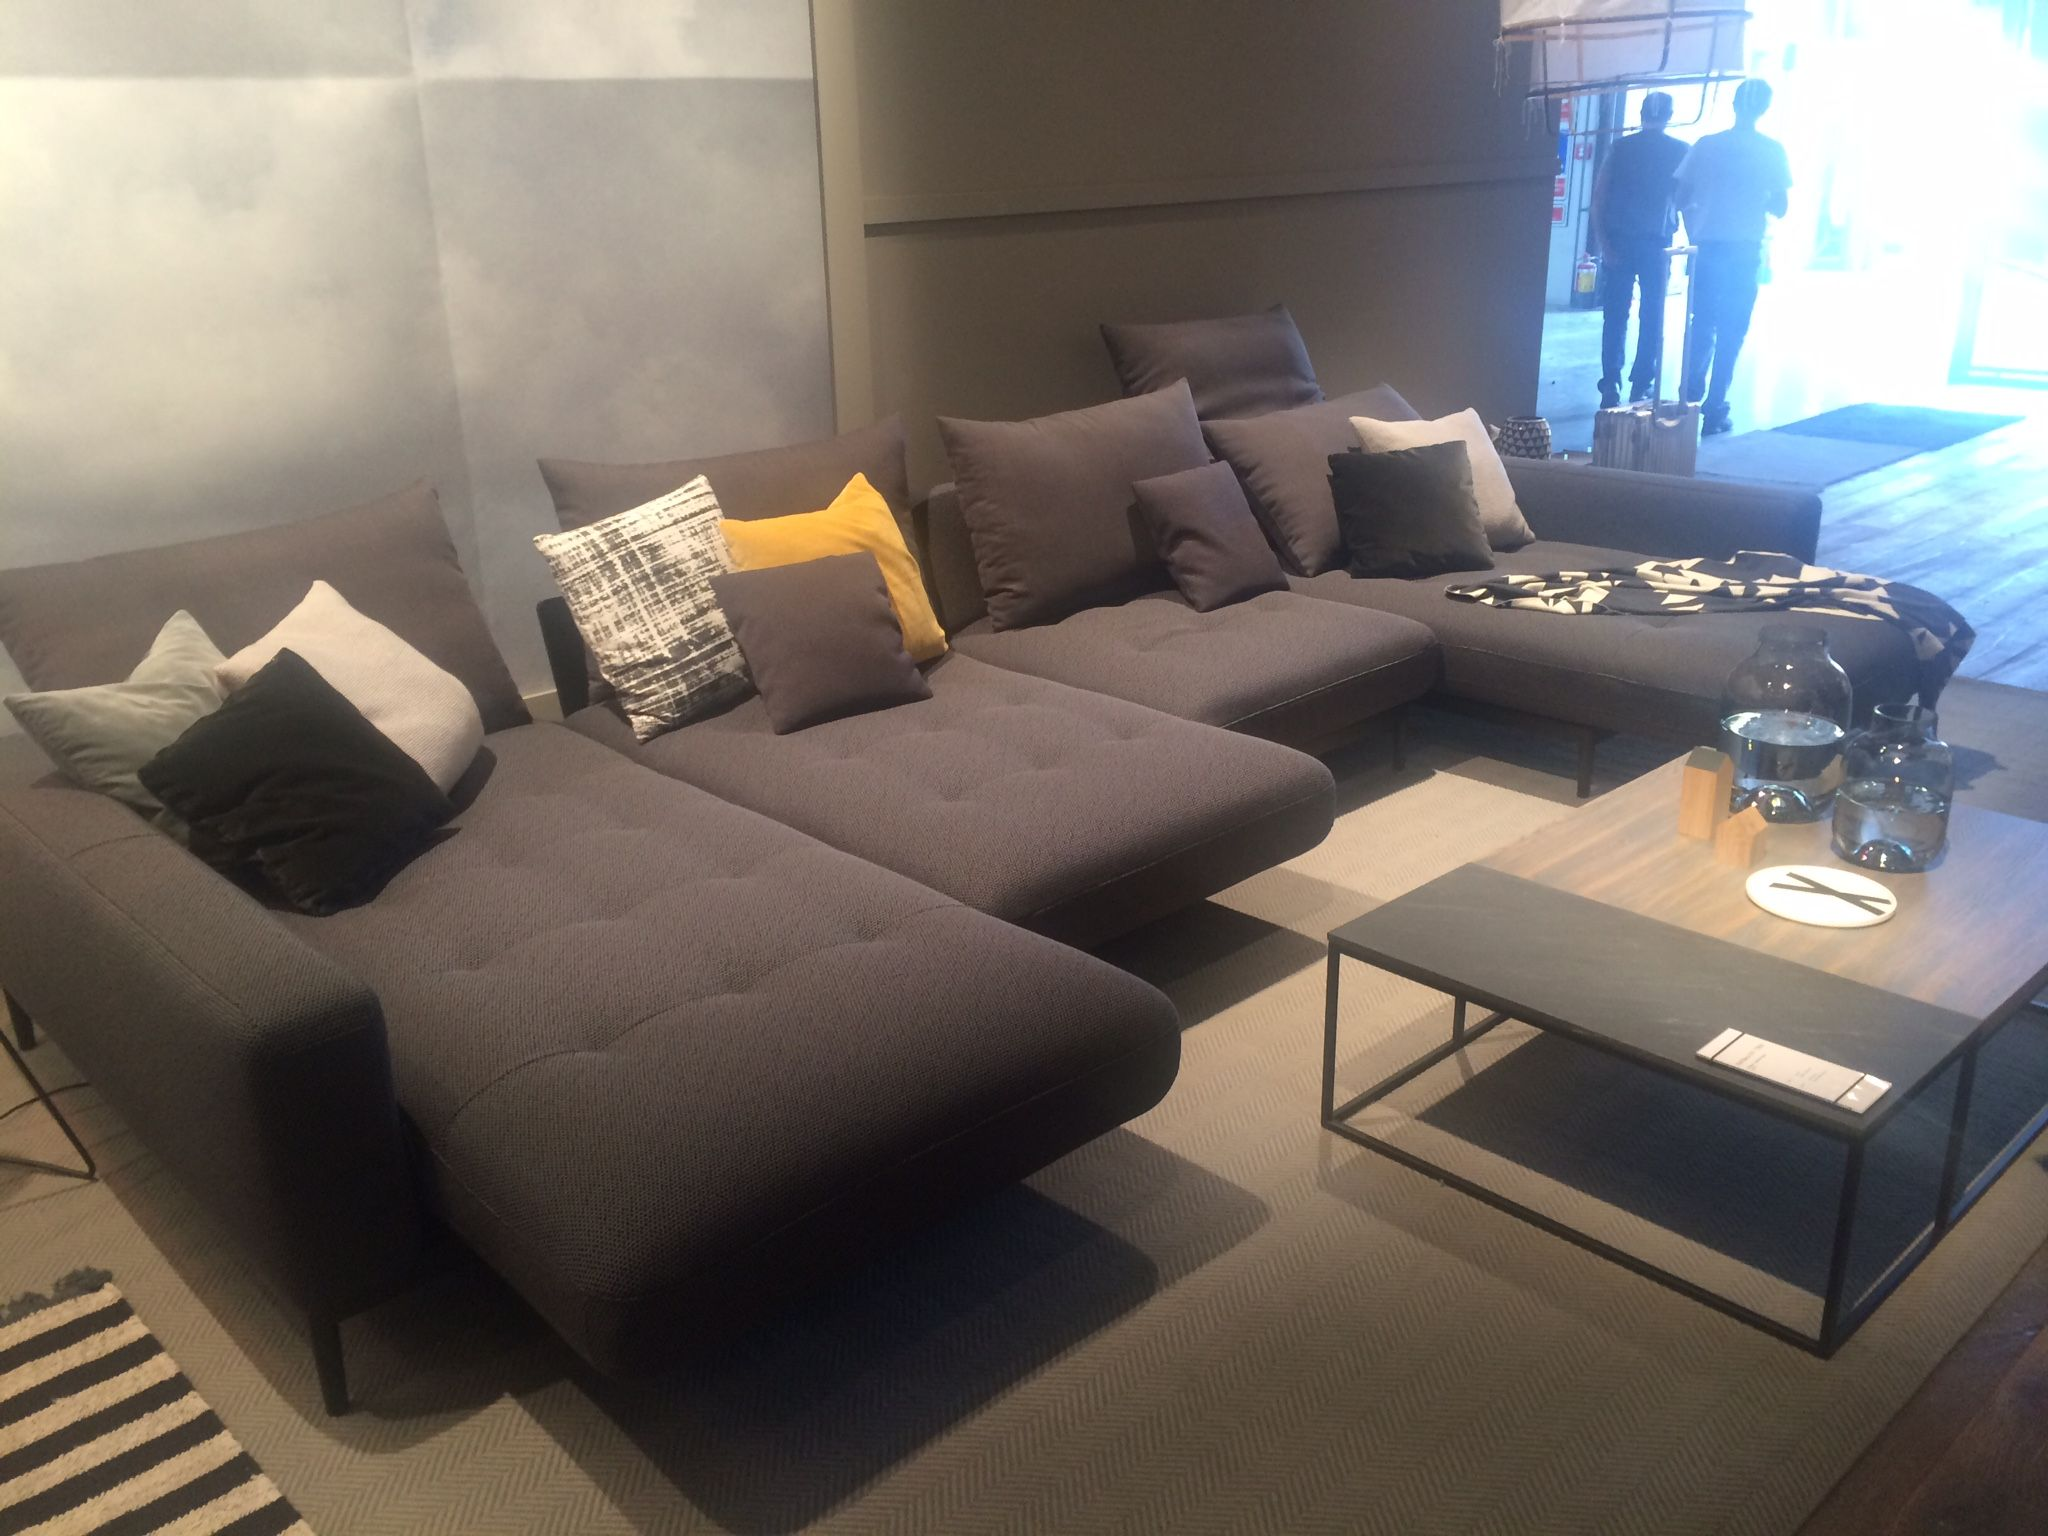 ROLF BENZ Tira by Joachim Nees and coffee table 985 by Labsdesign ...